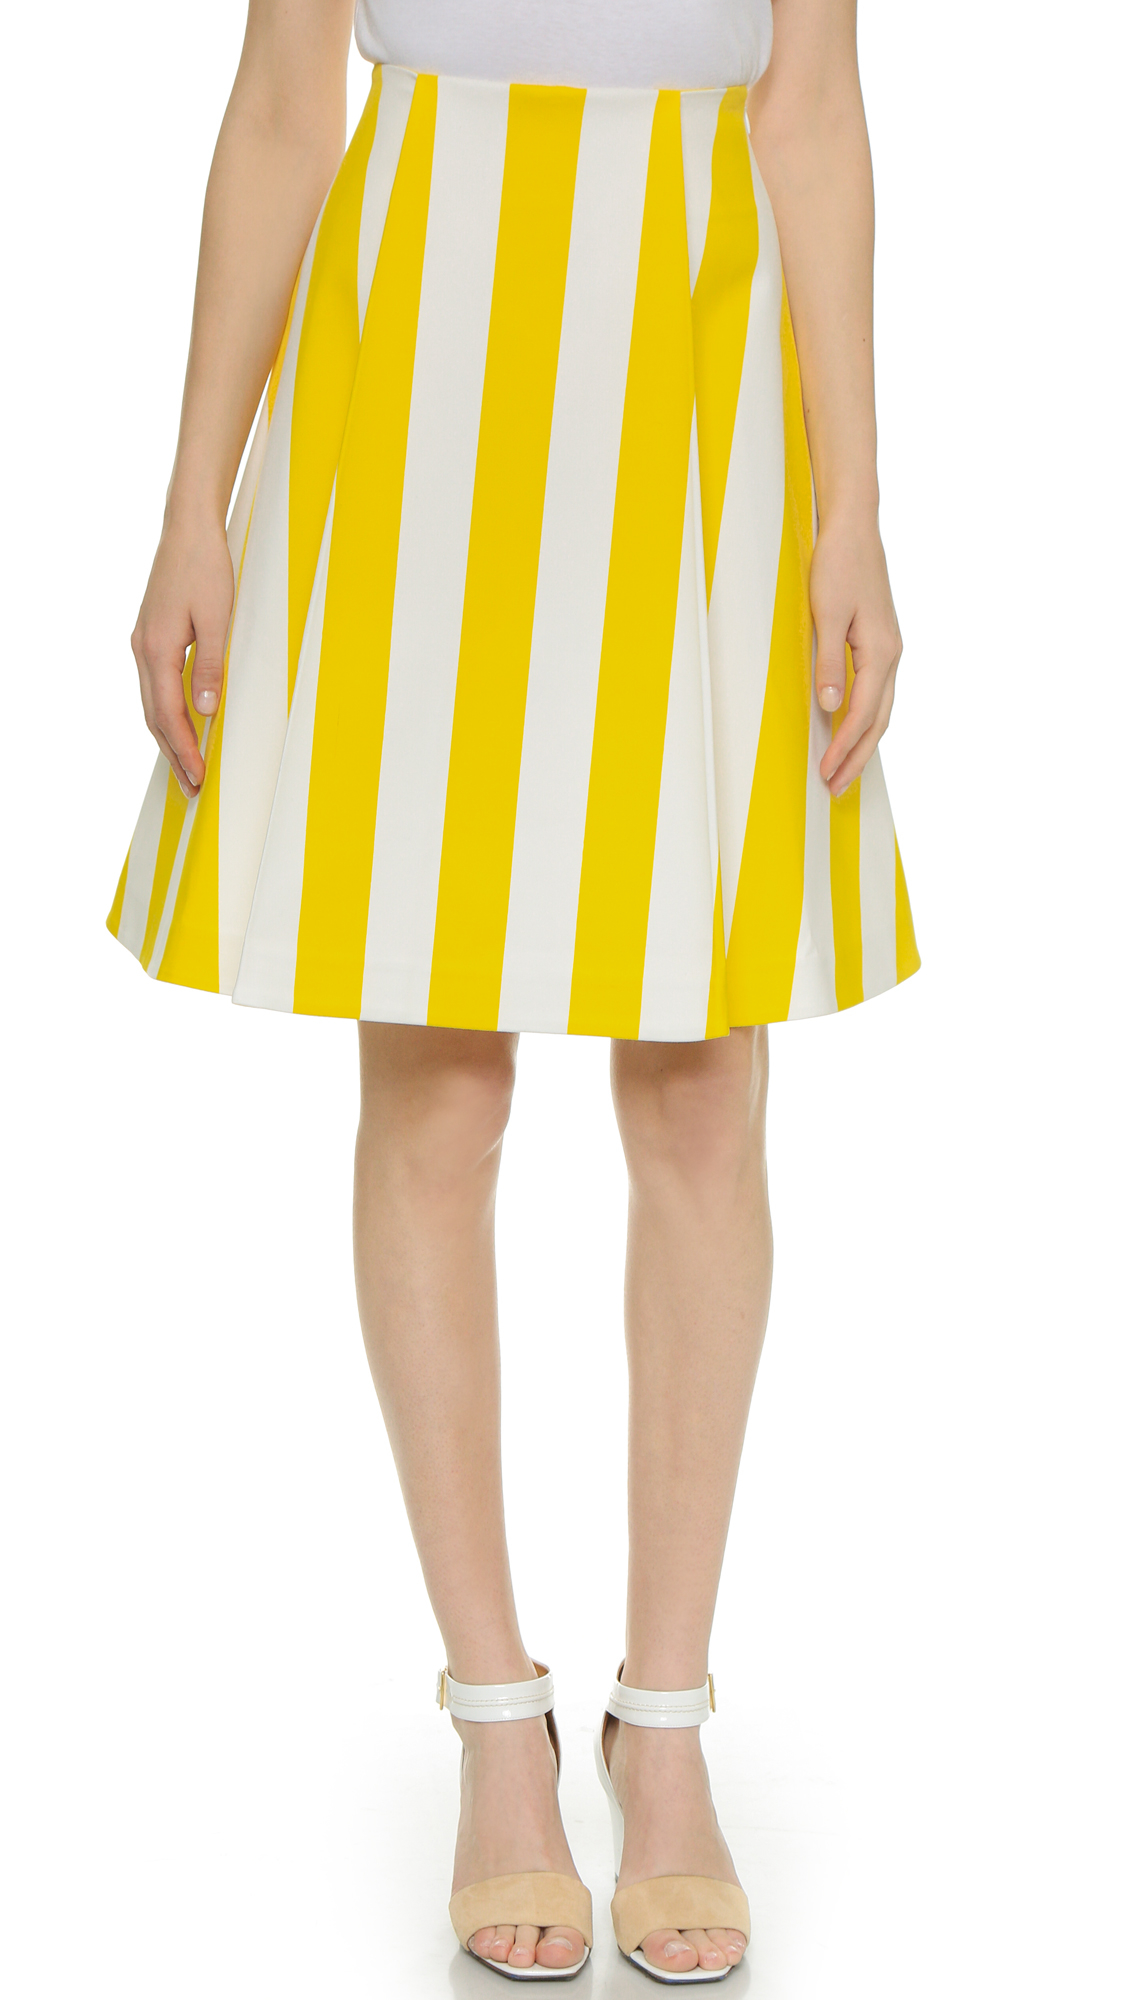 9d8ce4cc09 Jacquemus Striped Skirt - Yellow/White Stripes in Yellow - Lyst